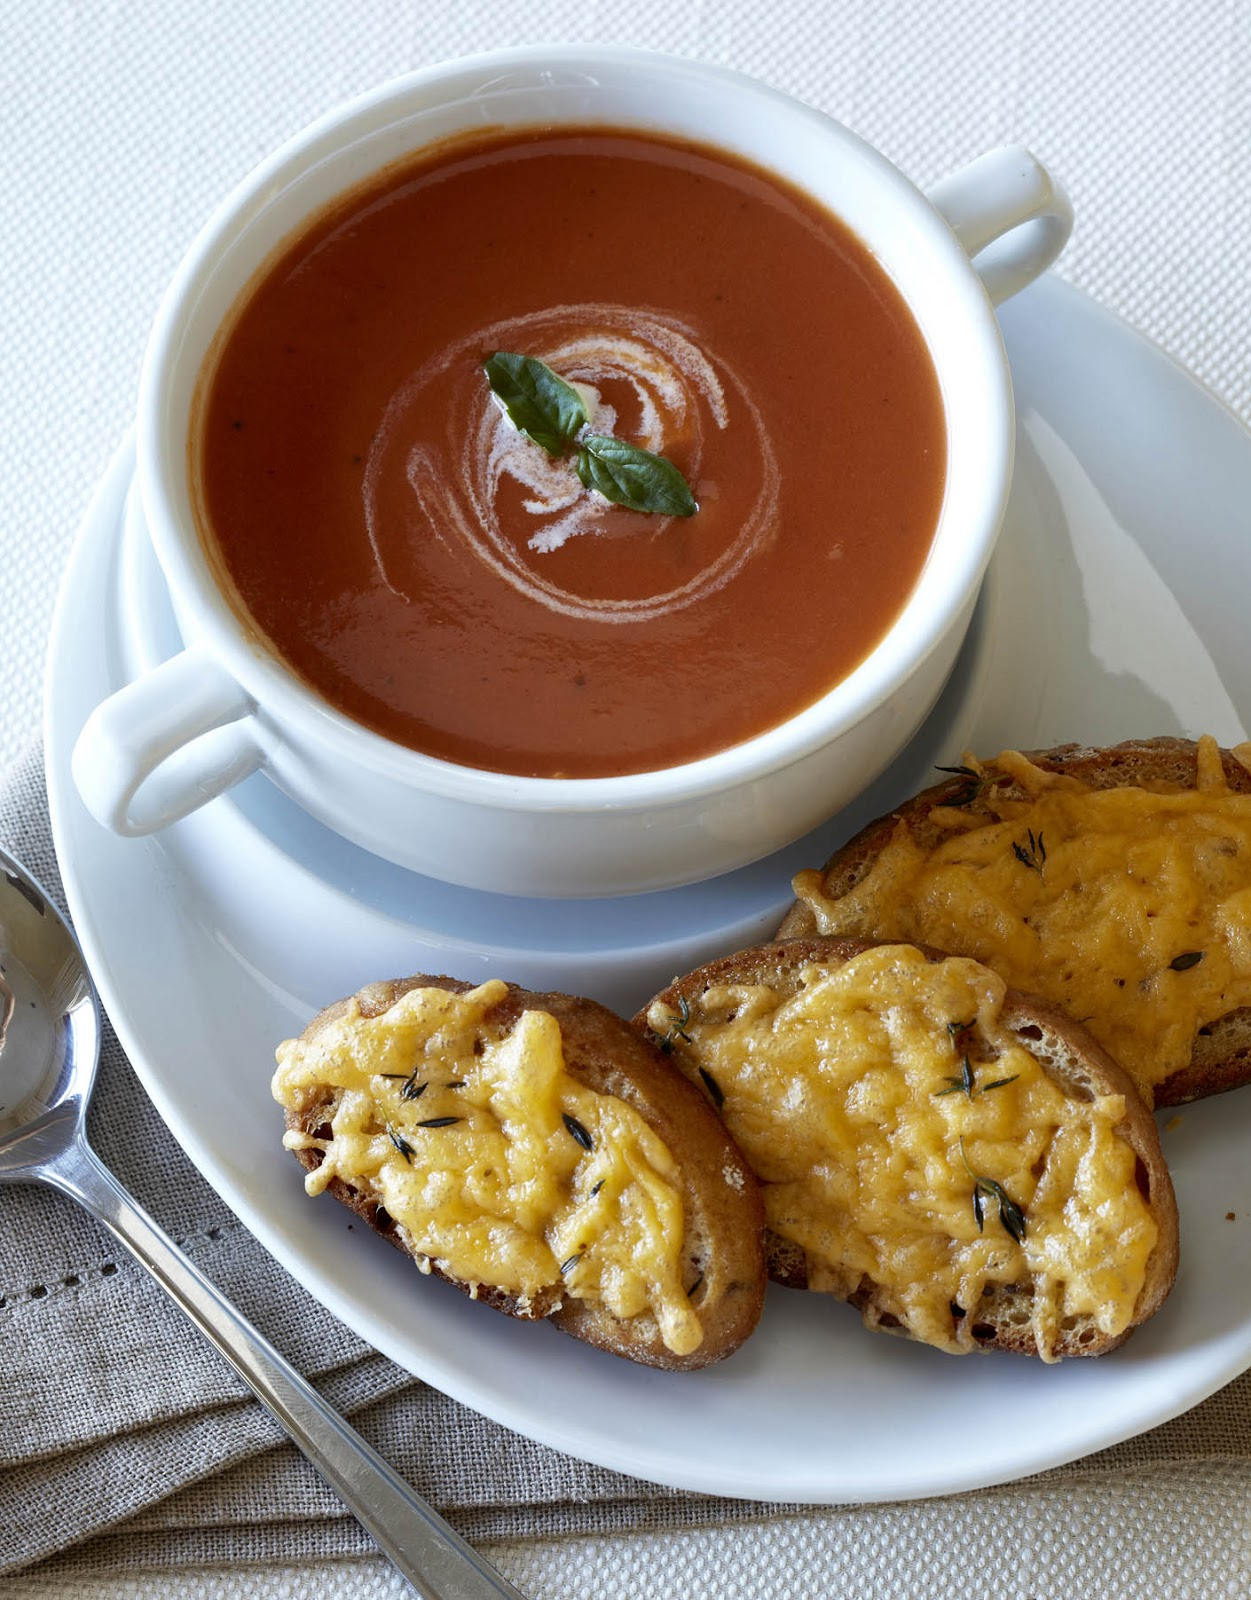 Tomato soup with toasted cheese